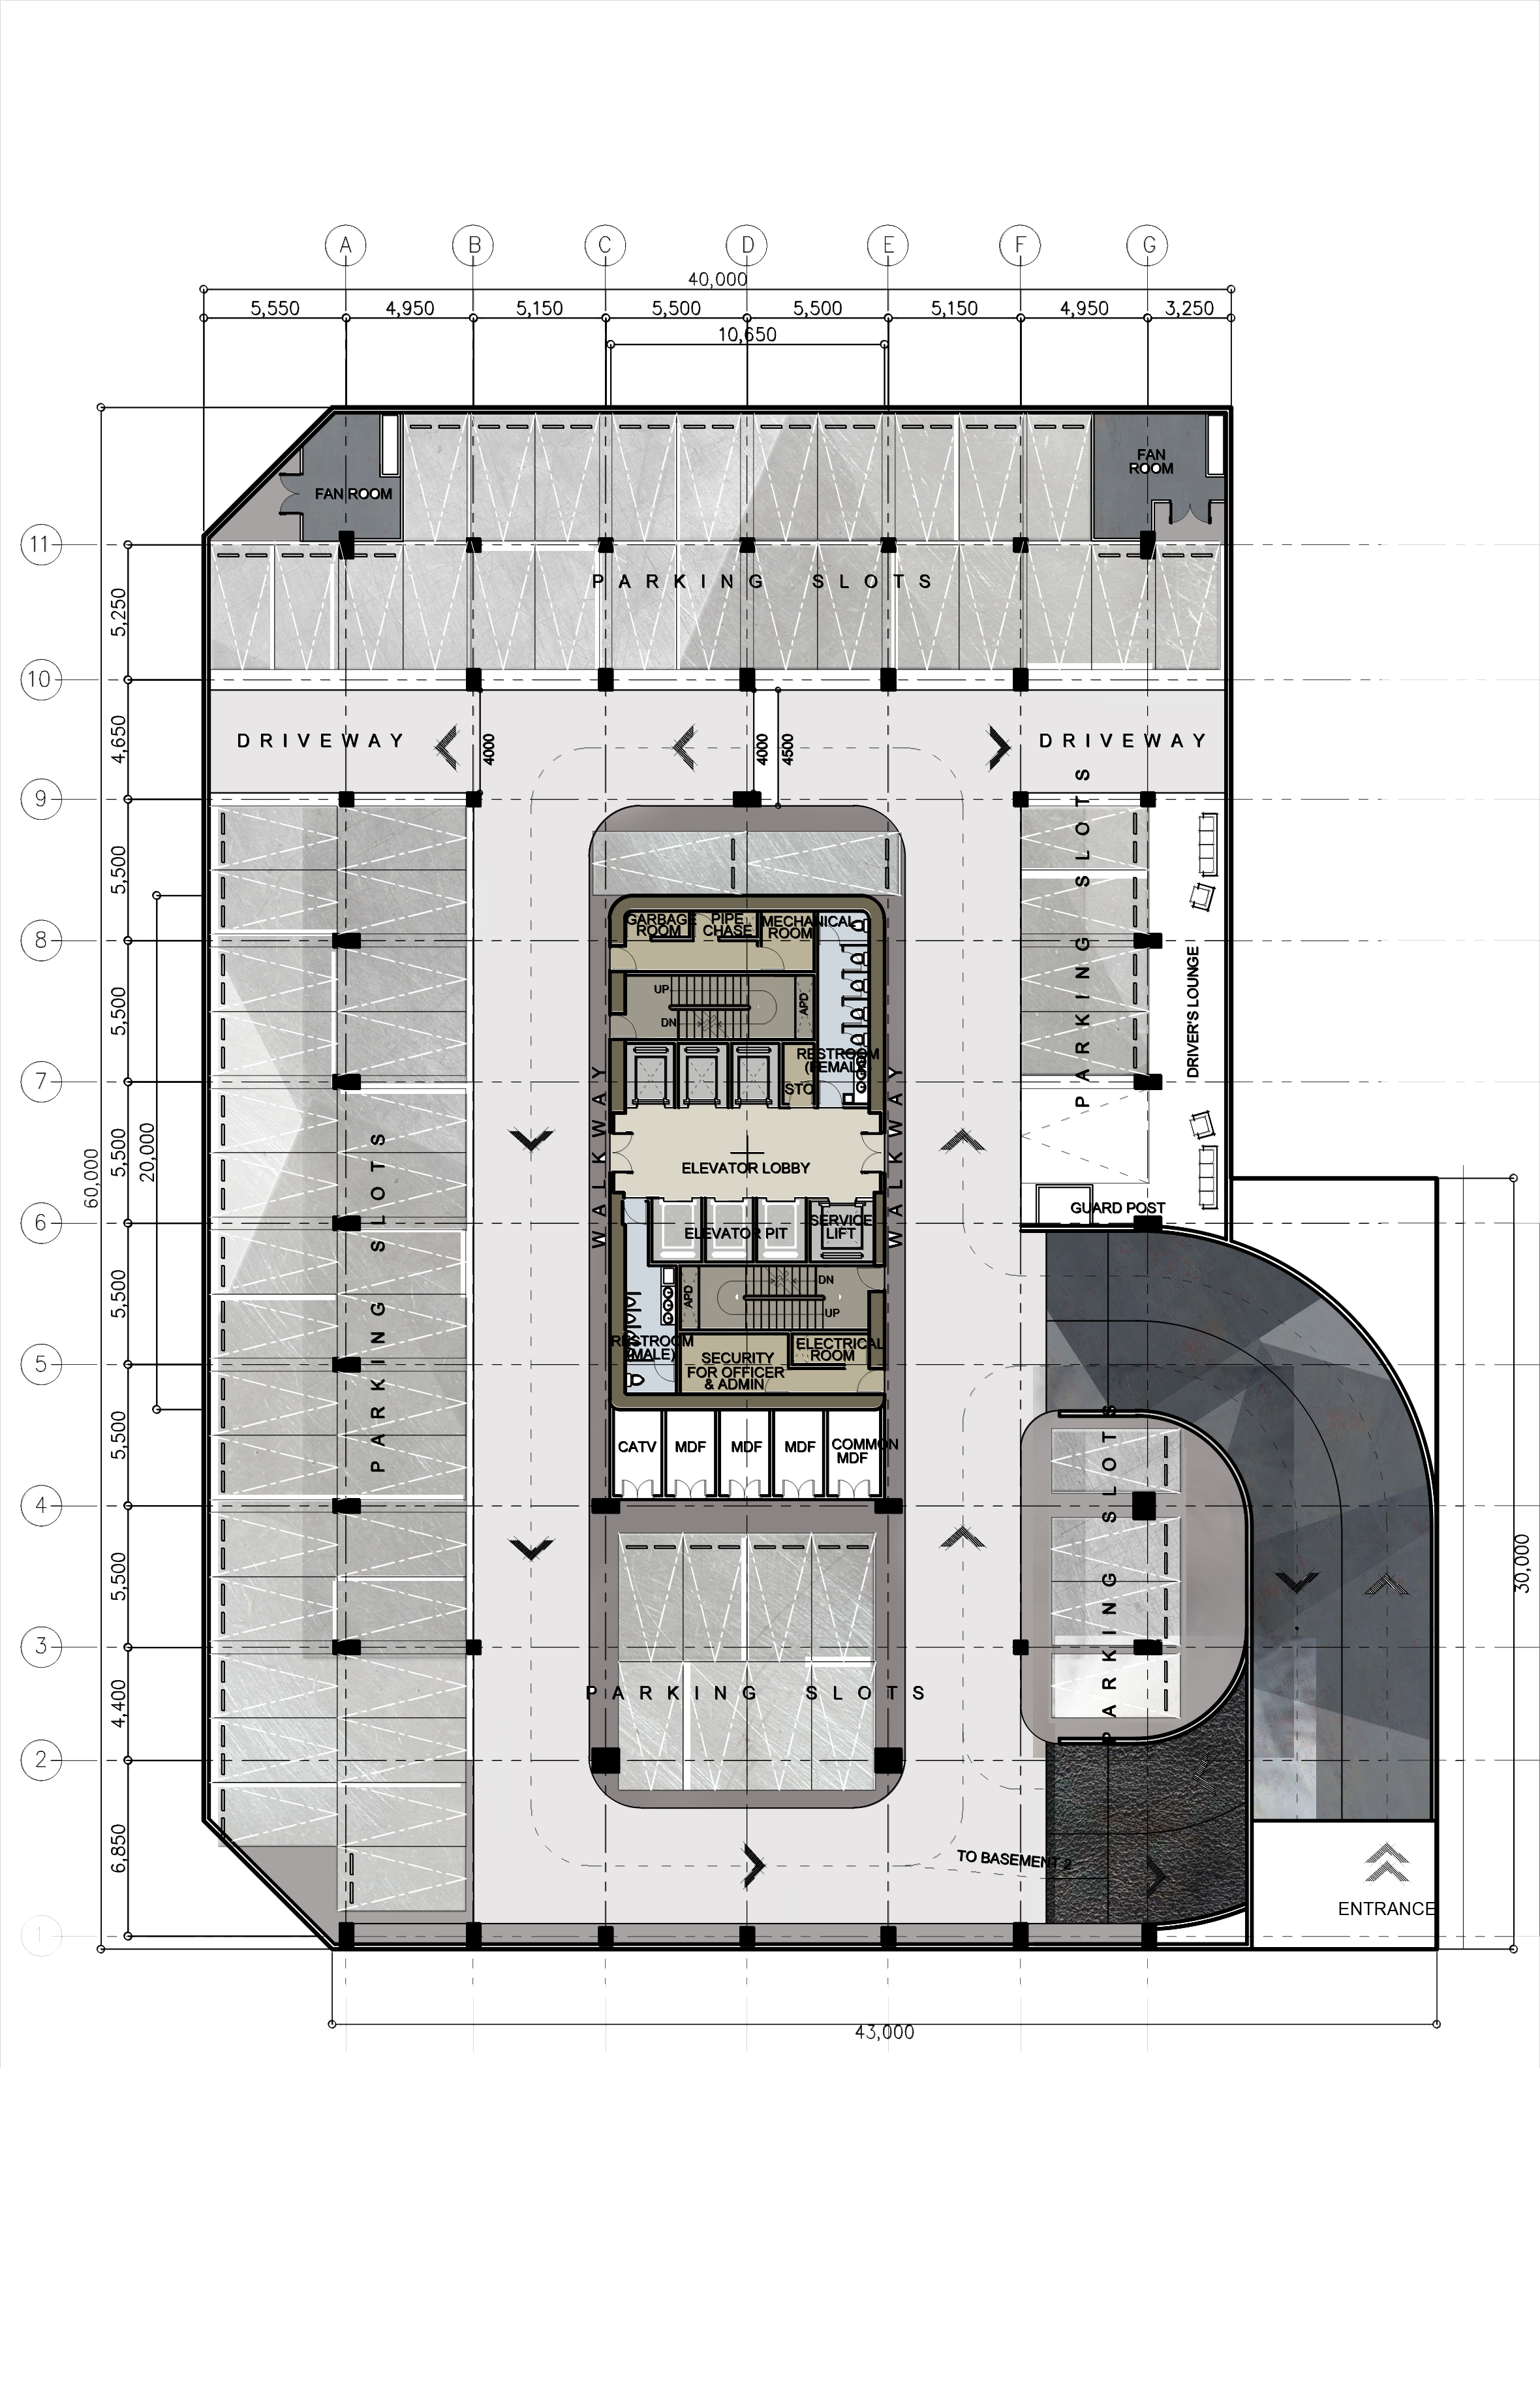 Drawn office architectural Corporate / Office Architectural Design